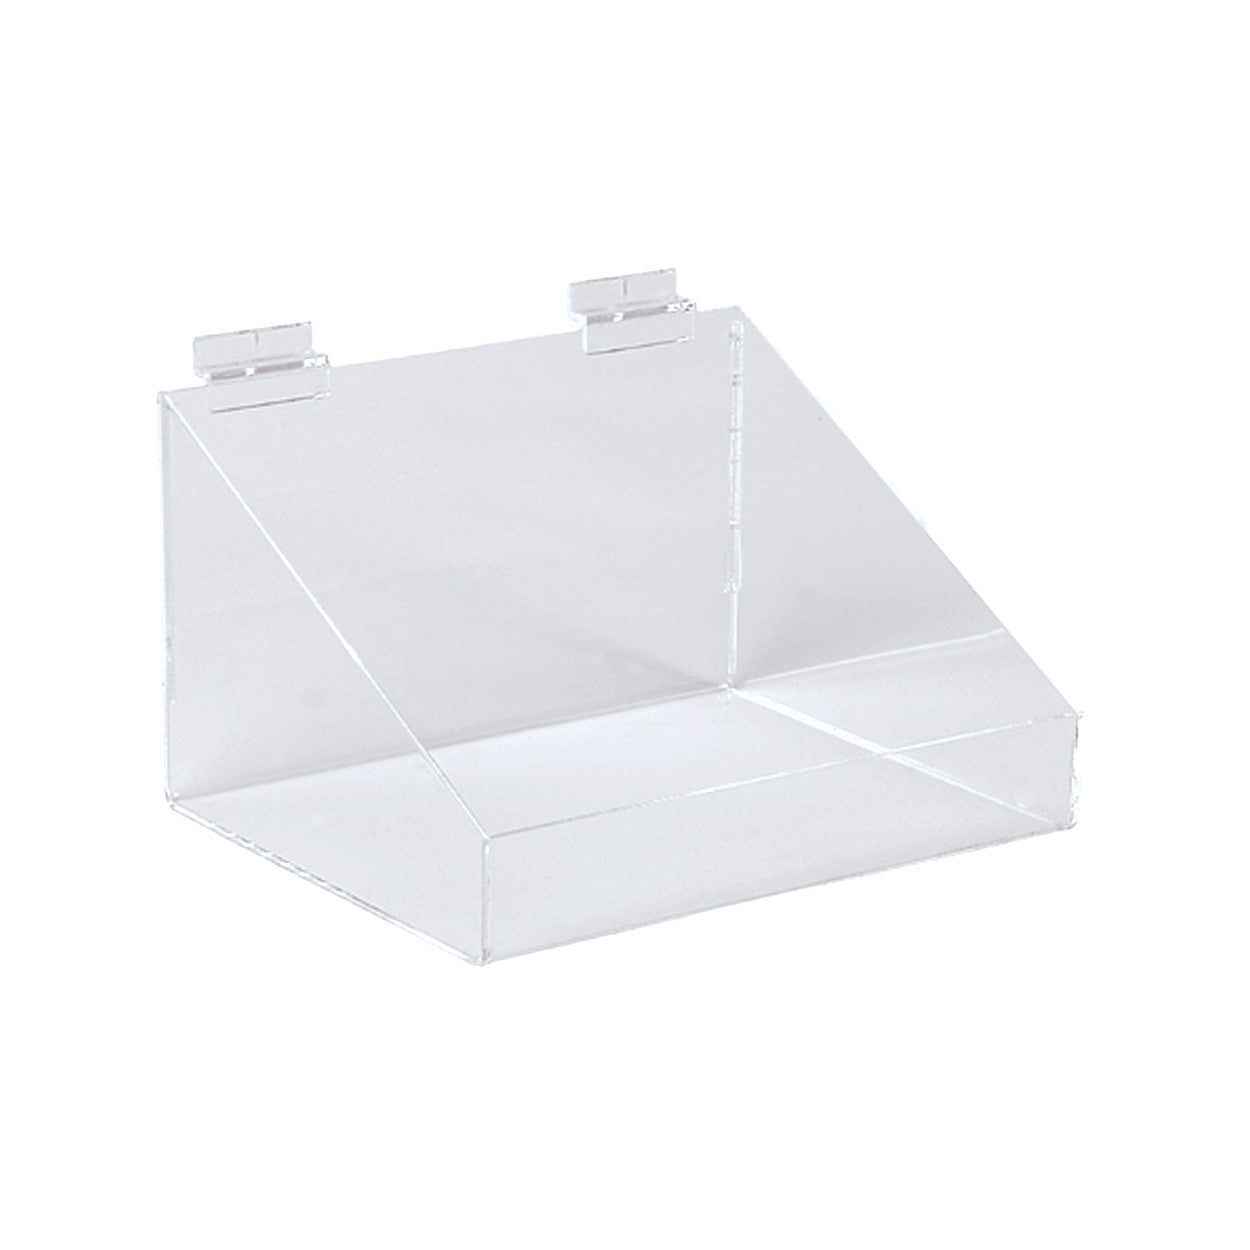 Slatwall acrylic display bin with low front  293 W x 200 D x 150 mm H S2520CA